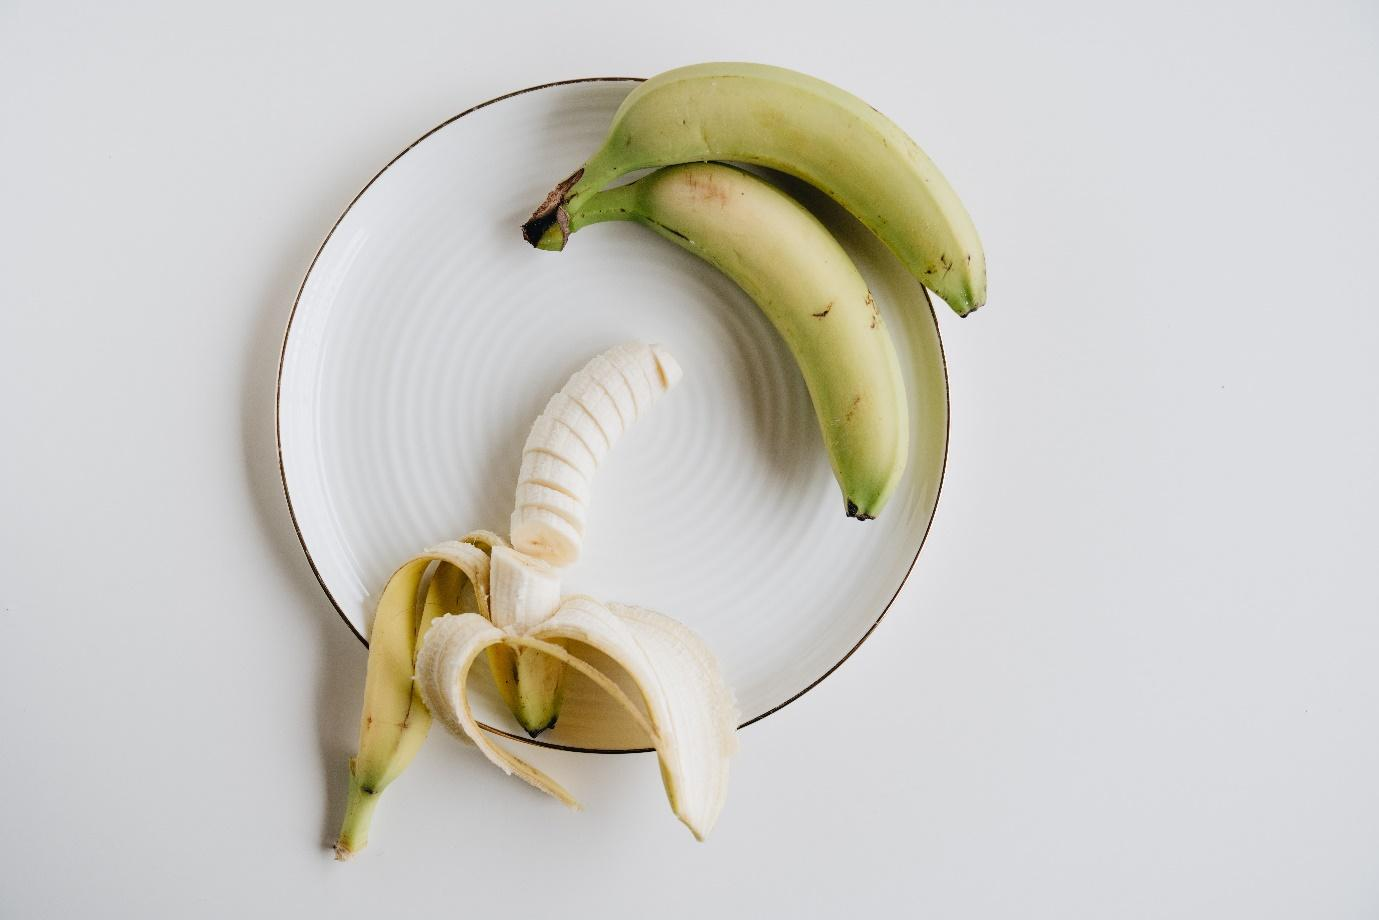 A picture containing banana, vegetable  Description automatically generated